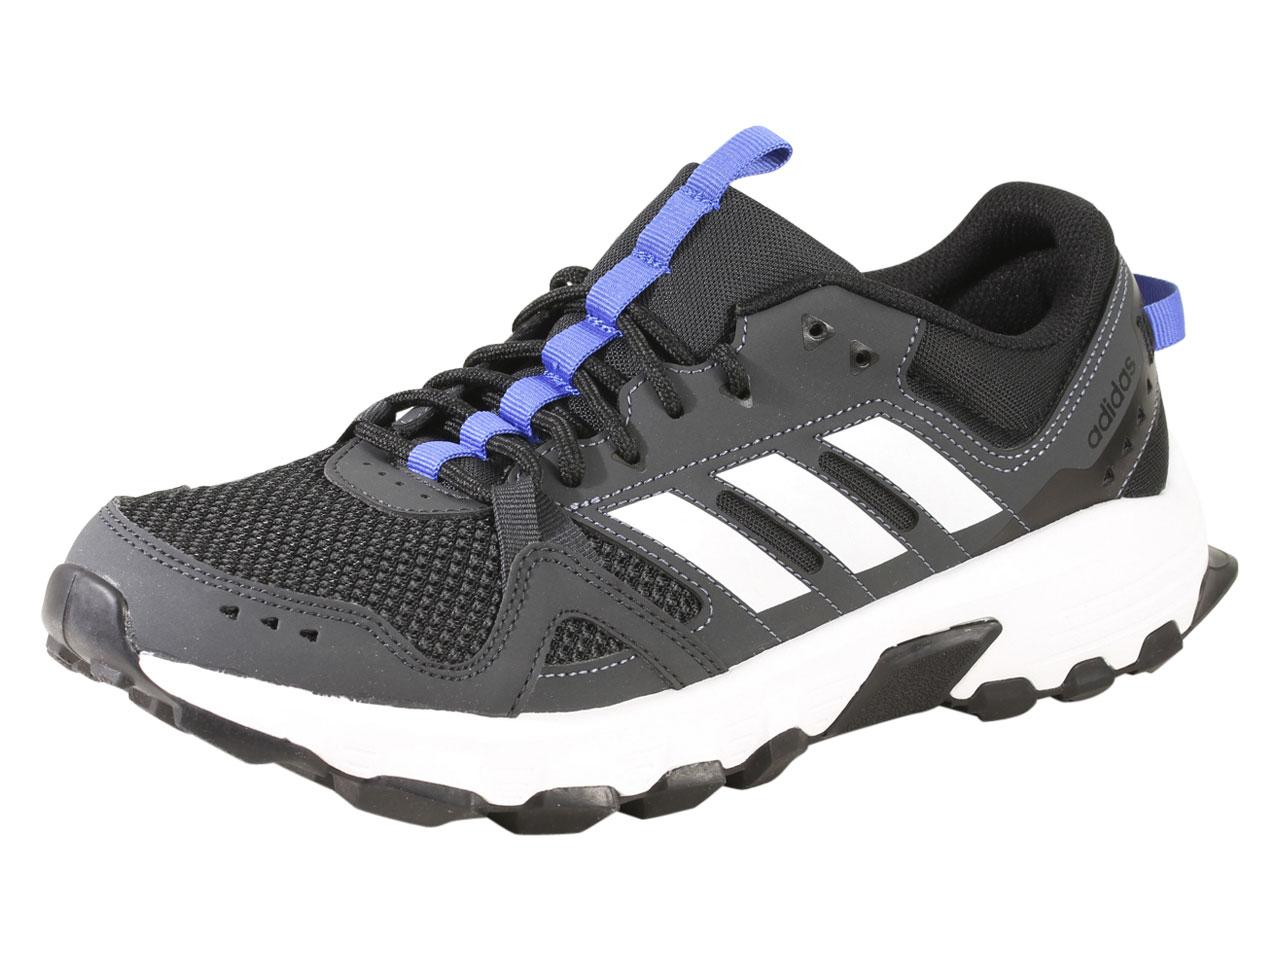 Adidas Men s Rockadia Trail Running Sneakers Shoes bff3f8c7f